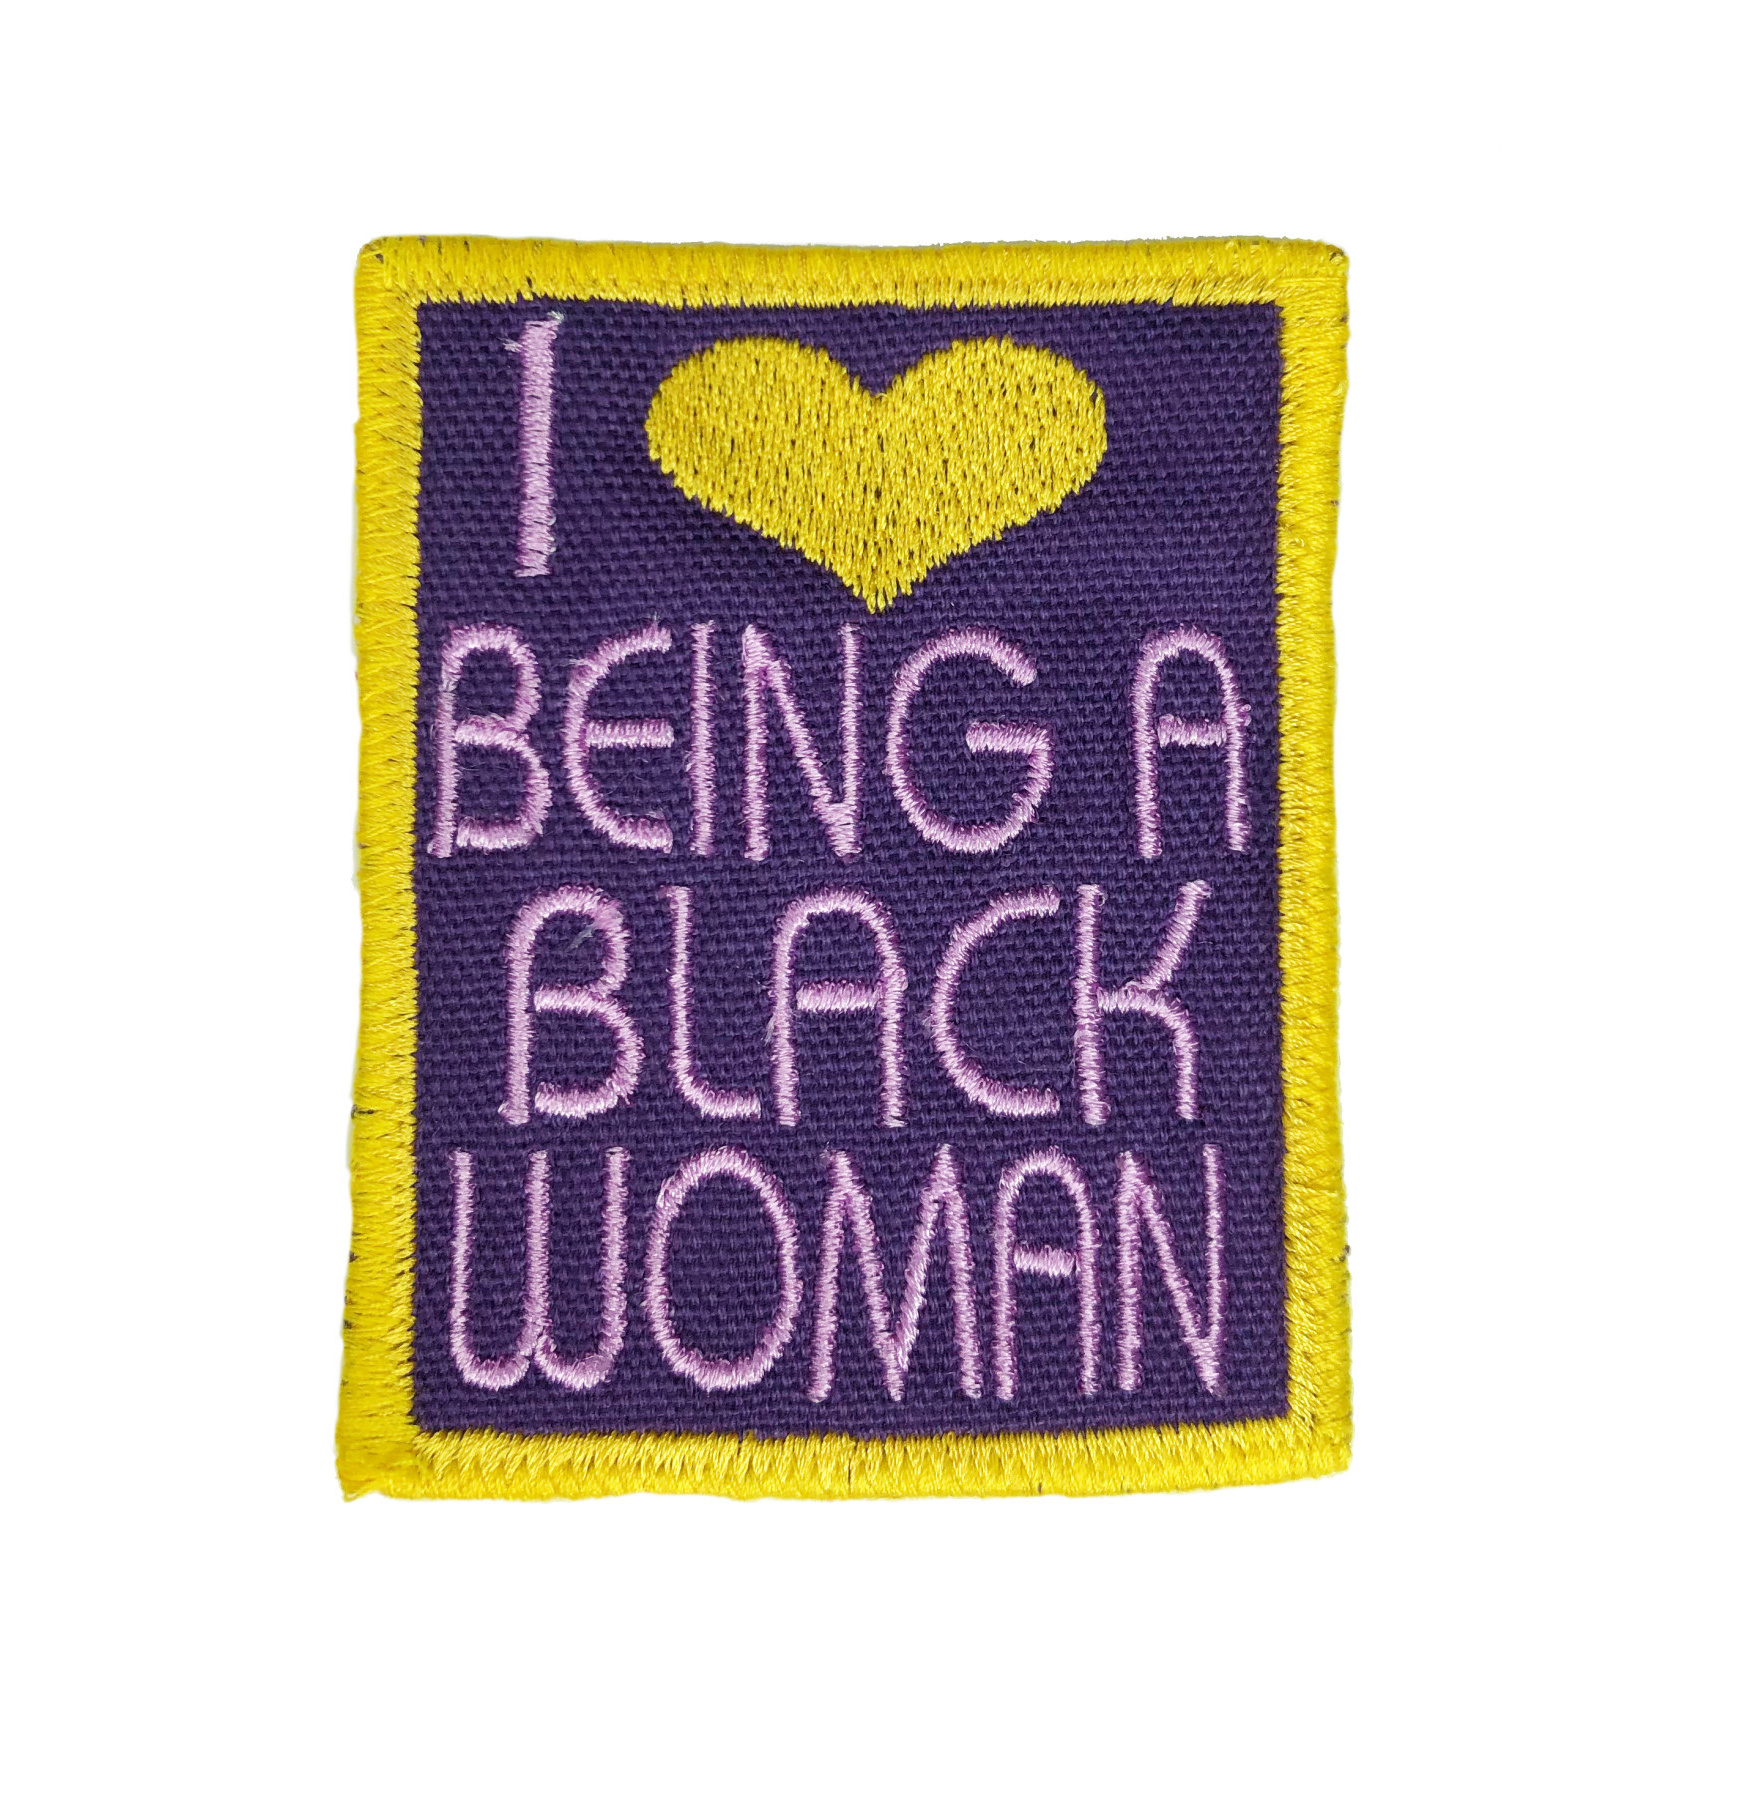 THE SHOP I LOVE BEING A BLACK WOMAN PATCHES-4